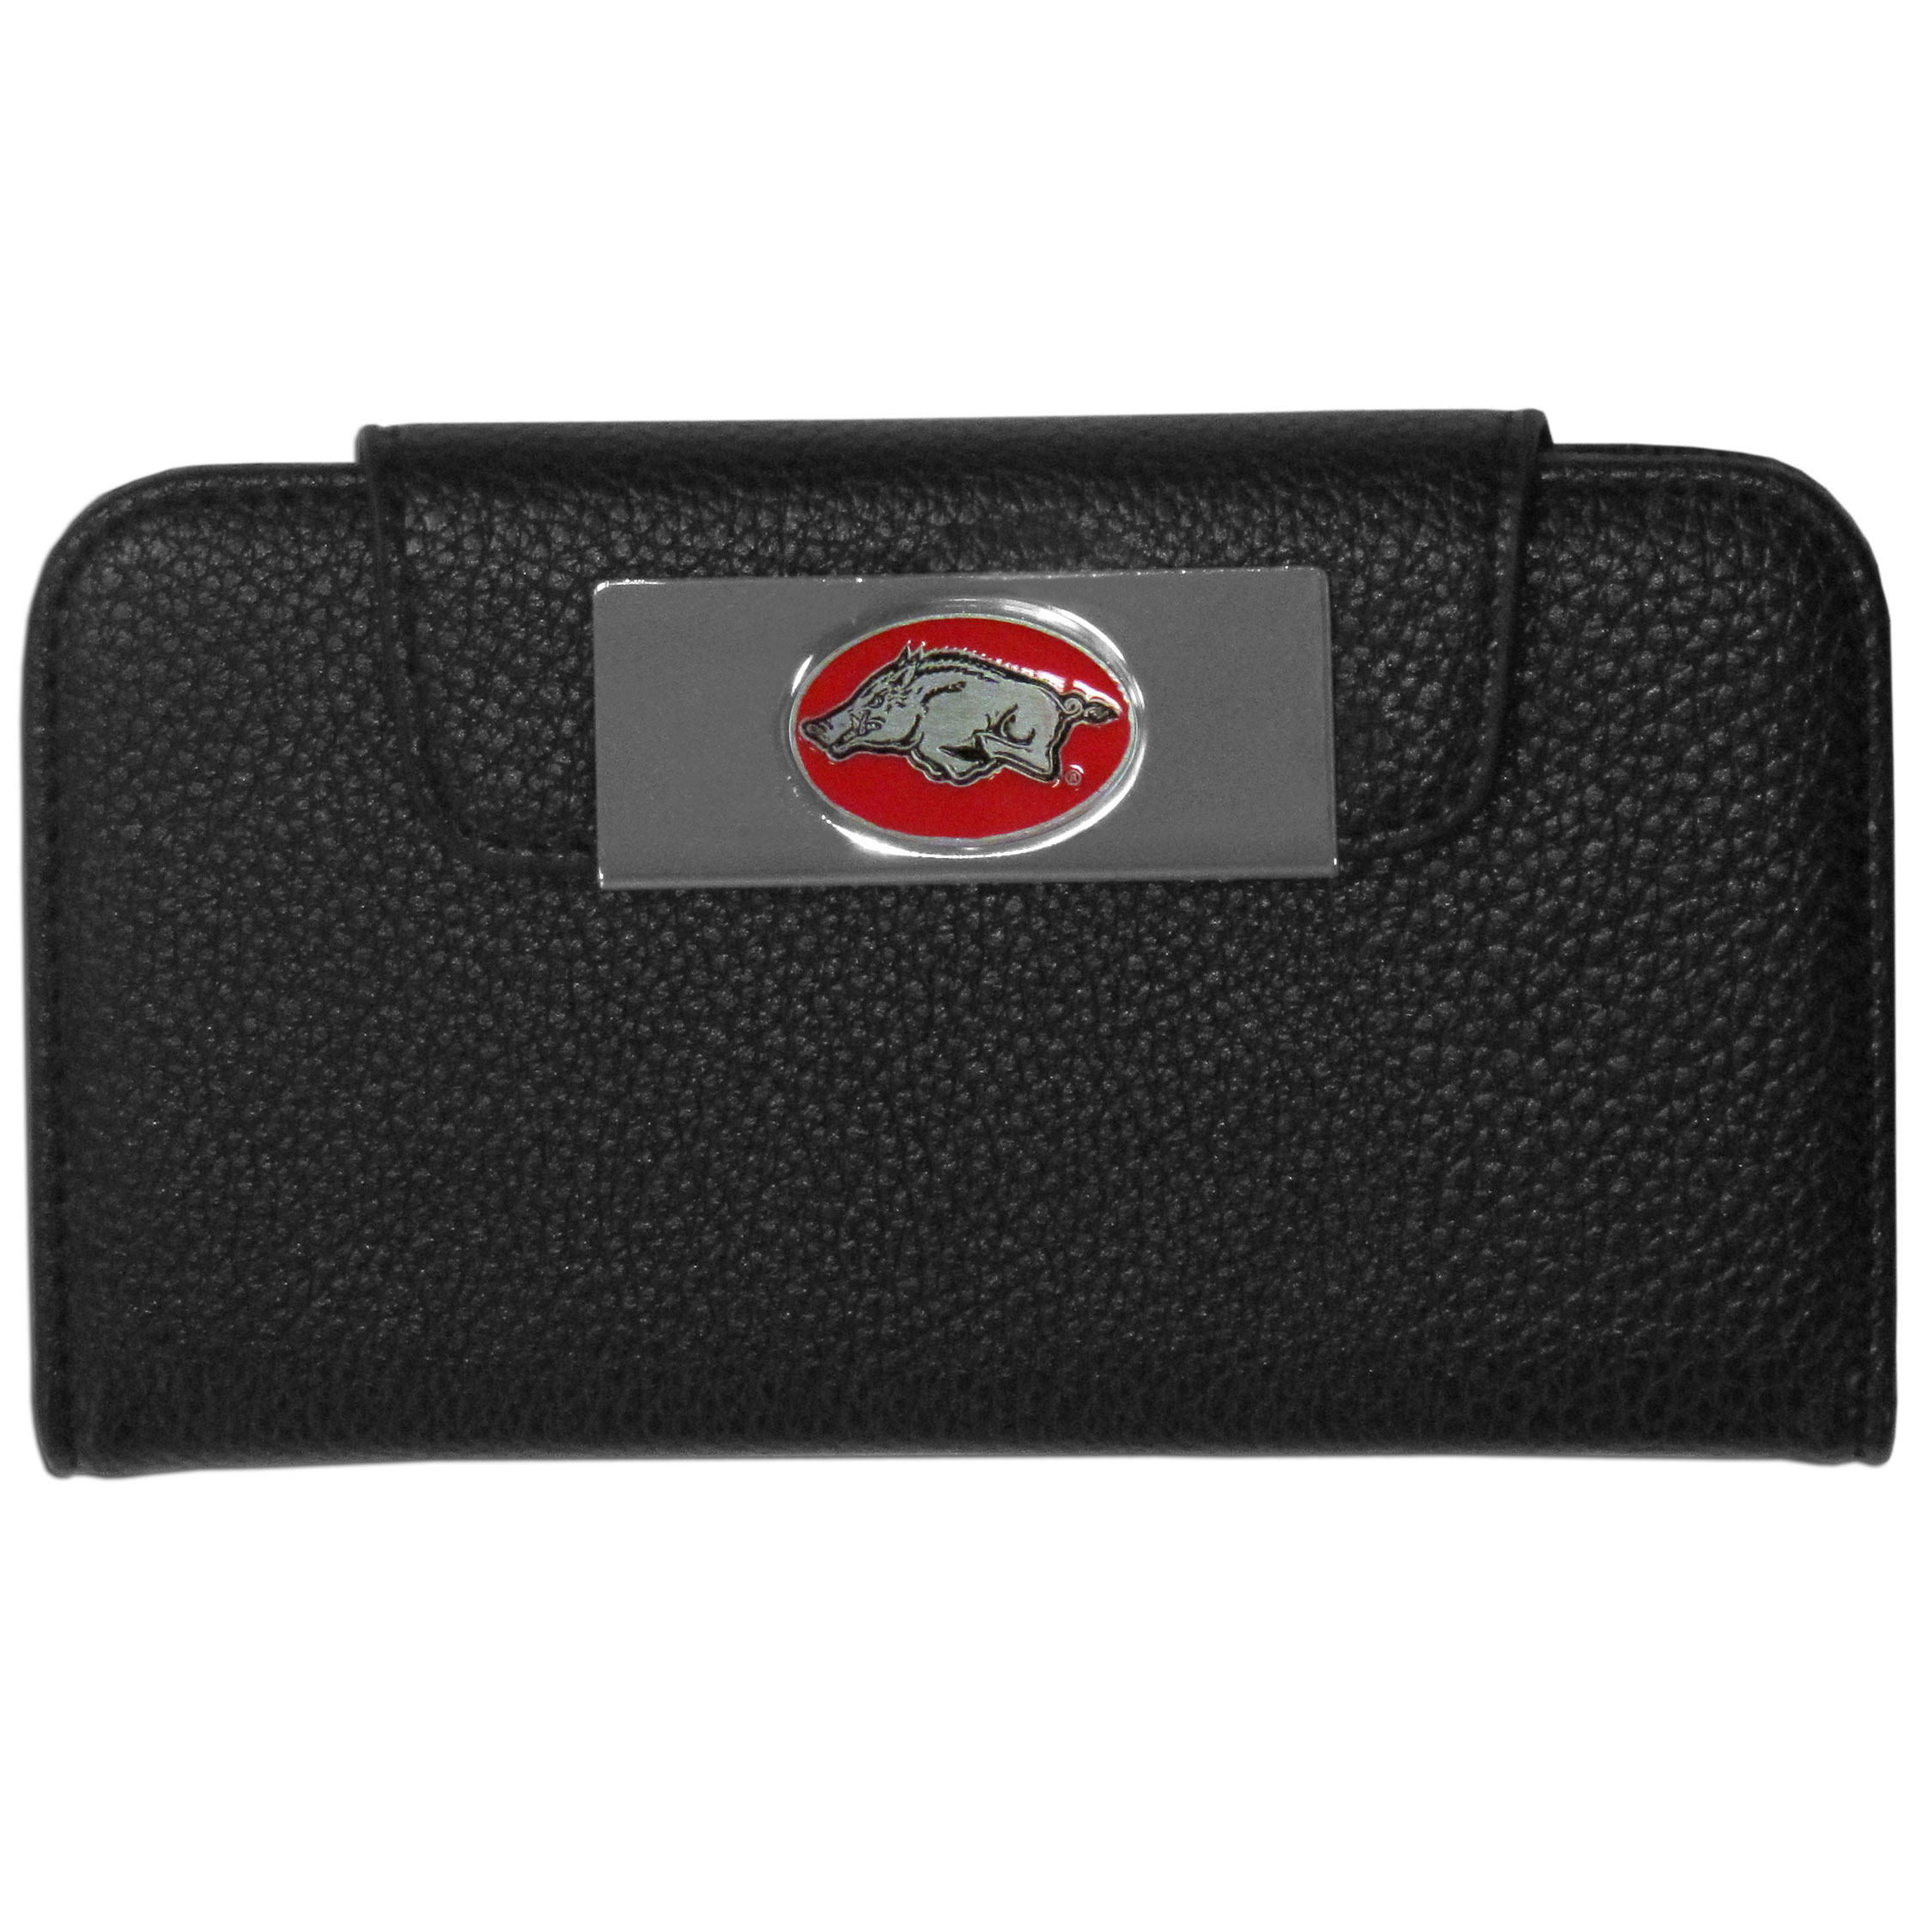 Arkansas Razorbacks Samsung Galaxy S4 Wallet Case - This new & wildly popular case is ideal for those who like to travel light! The stylish case has an inner hard shell that securely holds your phone while allowing complete access to the phone's functionality. The flip cover has slots for credit cards, business cards and identification. The magnetic flip cover has a metal Arkansas Razorbacks emblem on a high polish chrome backing. Fits the Samsung Galaxy S4